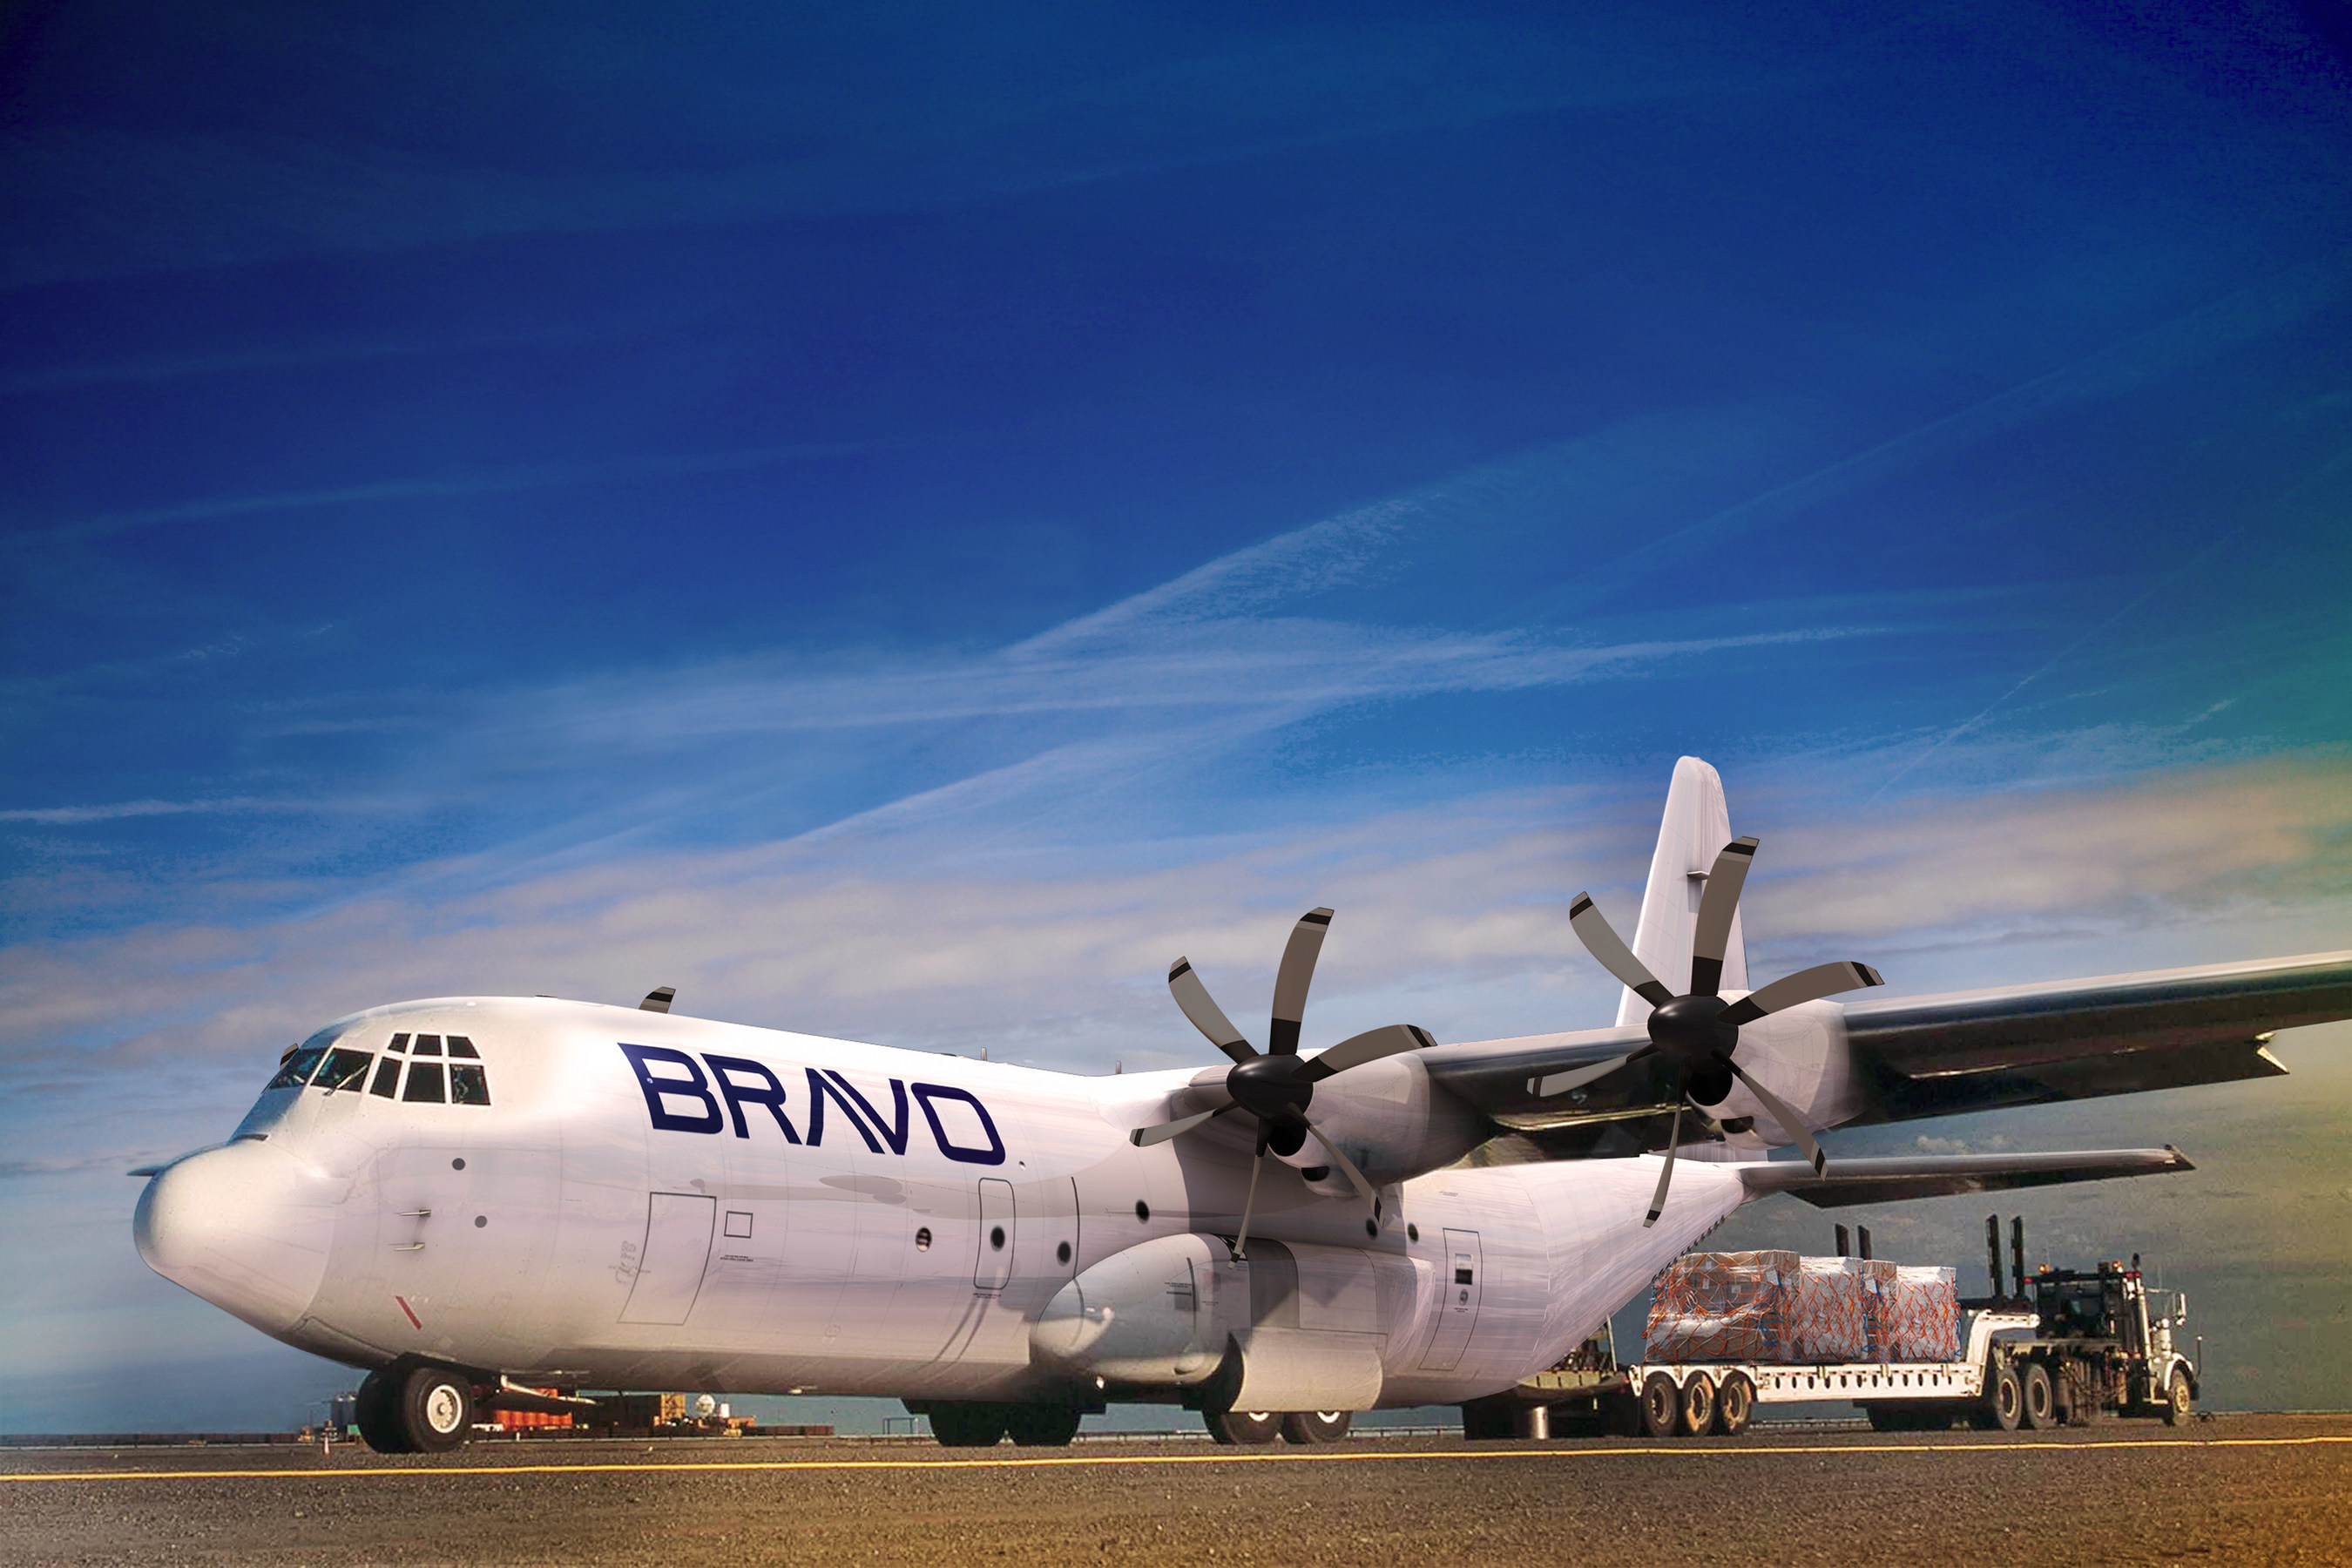 Bravo Industries announced it will purchase 10 LM-100J commercial freighters from Lockheed Martin at Farnborough Air Show on July 12, 2016.